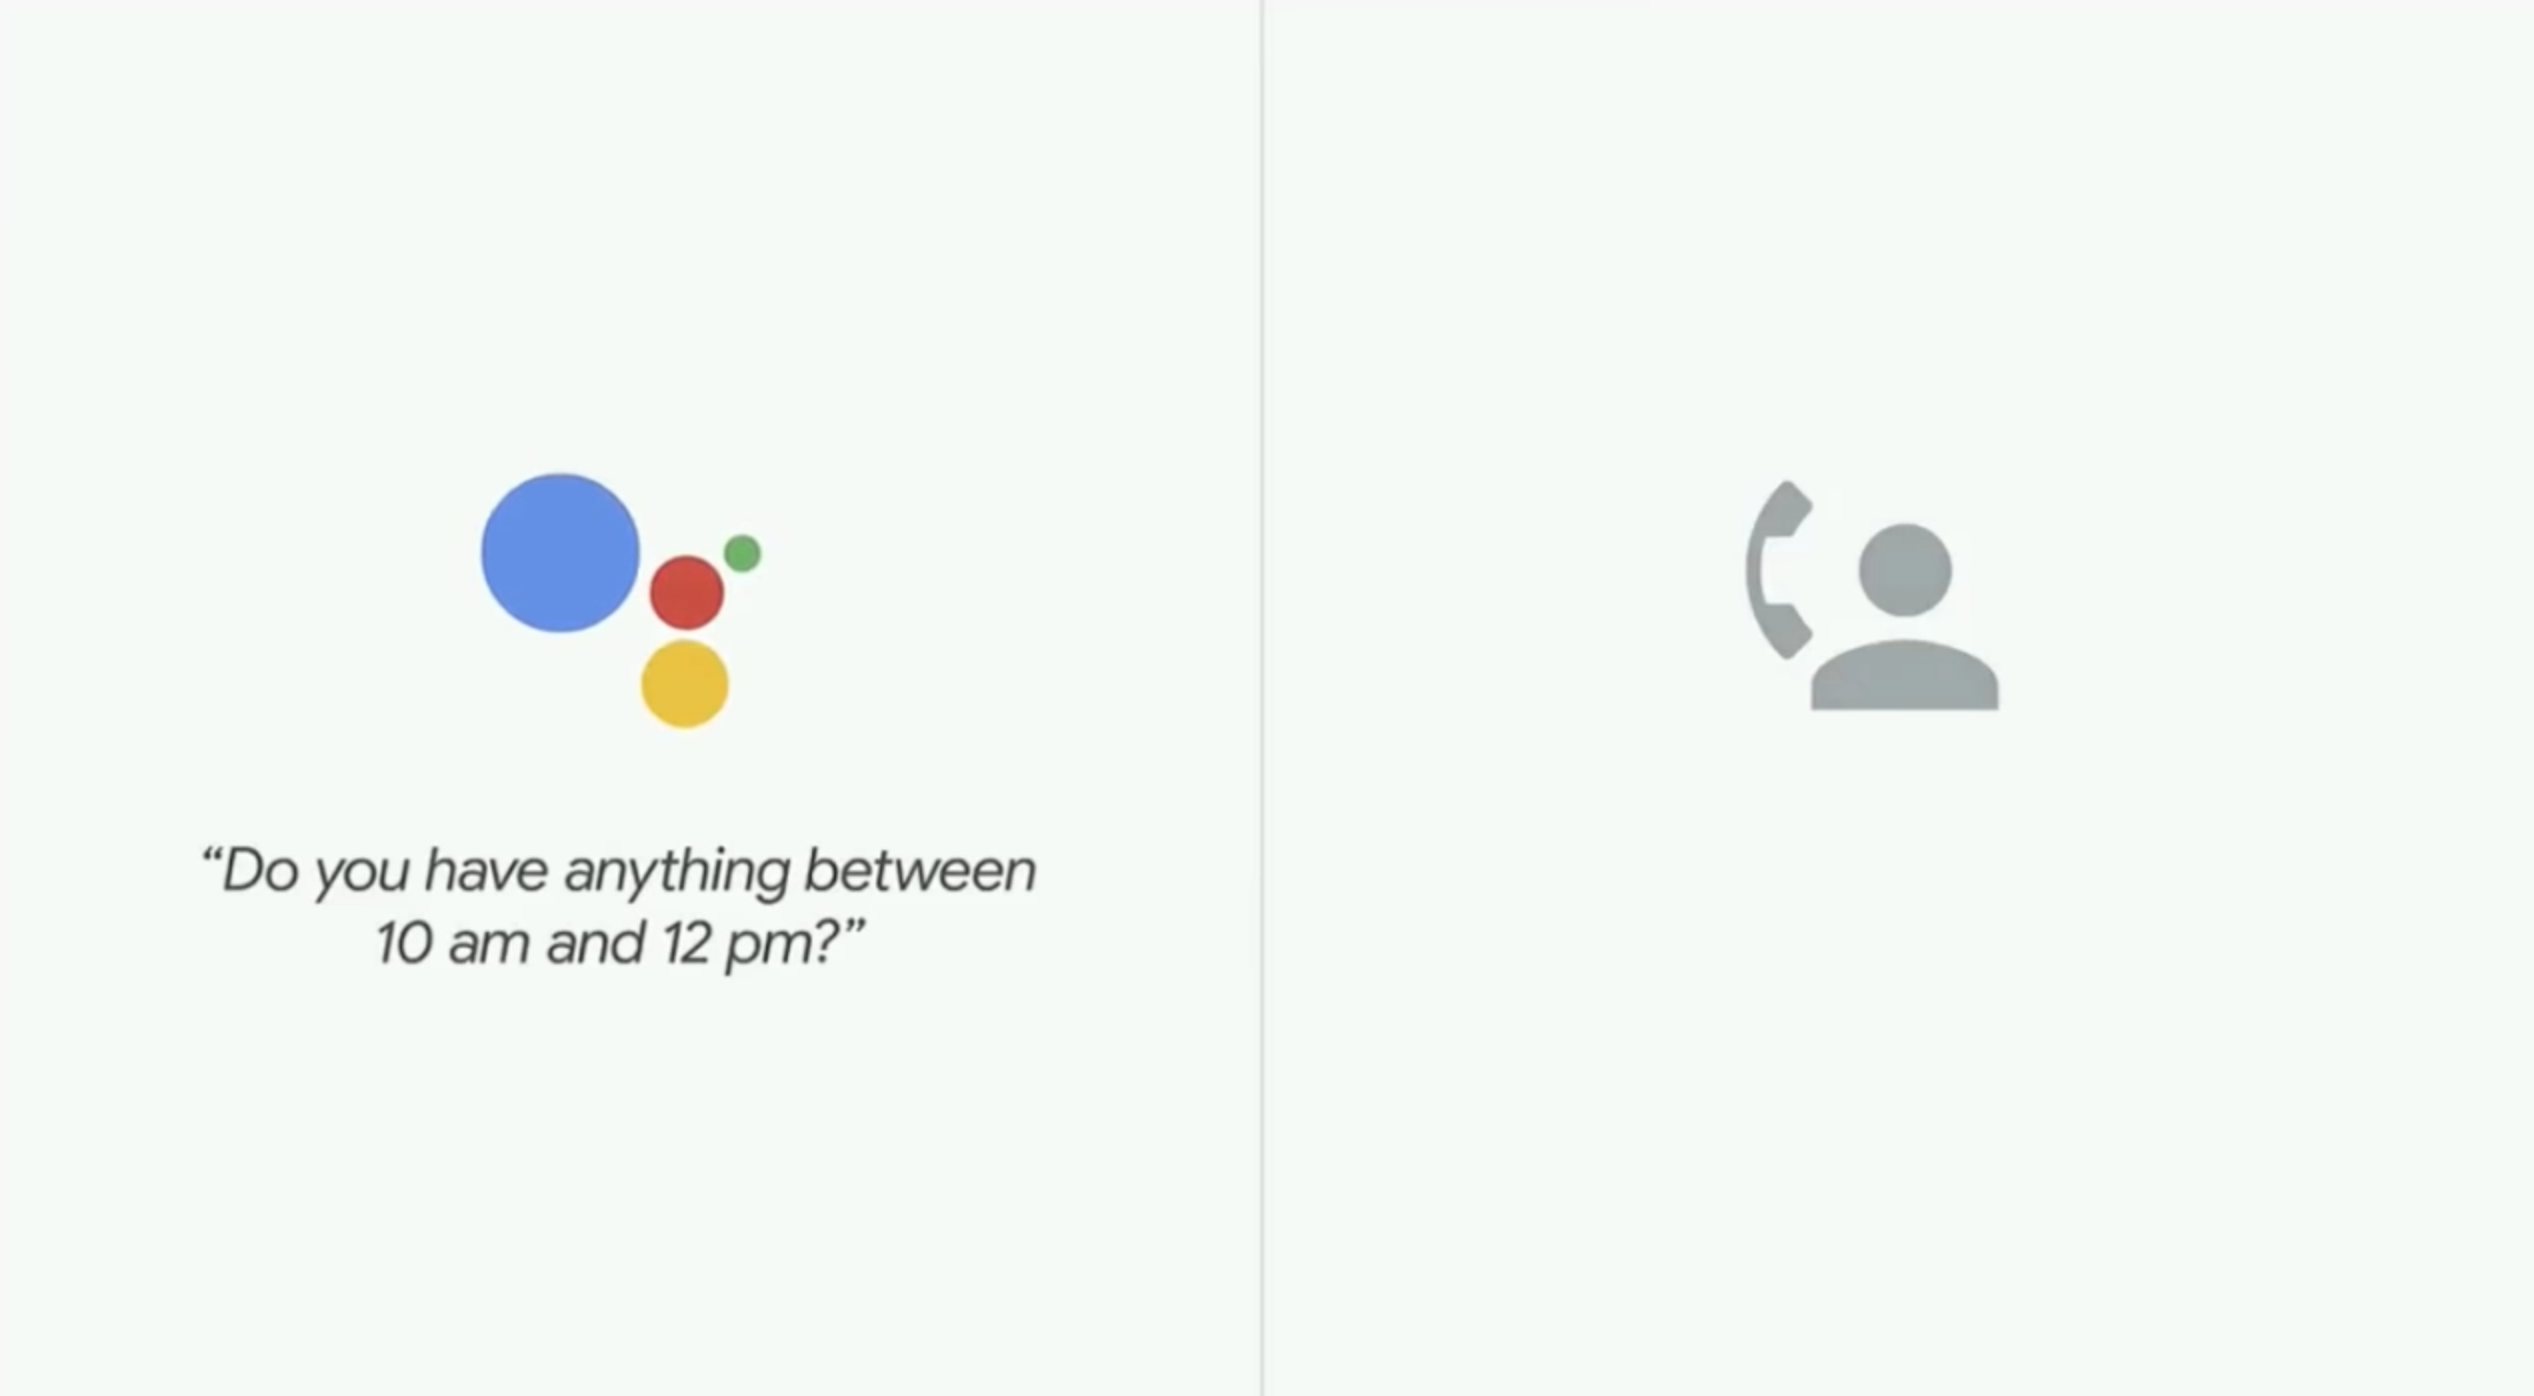 Google Duplex Demonstrates Natural Sounding Voice - Becoming